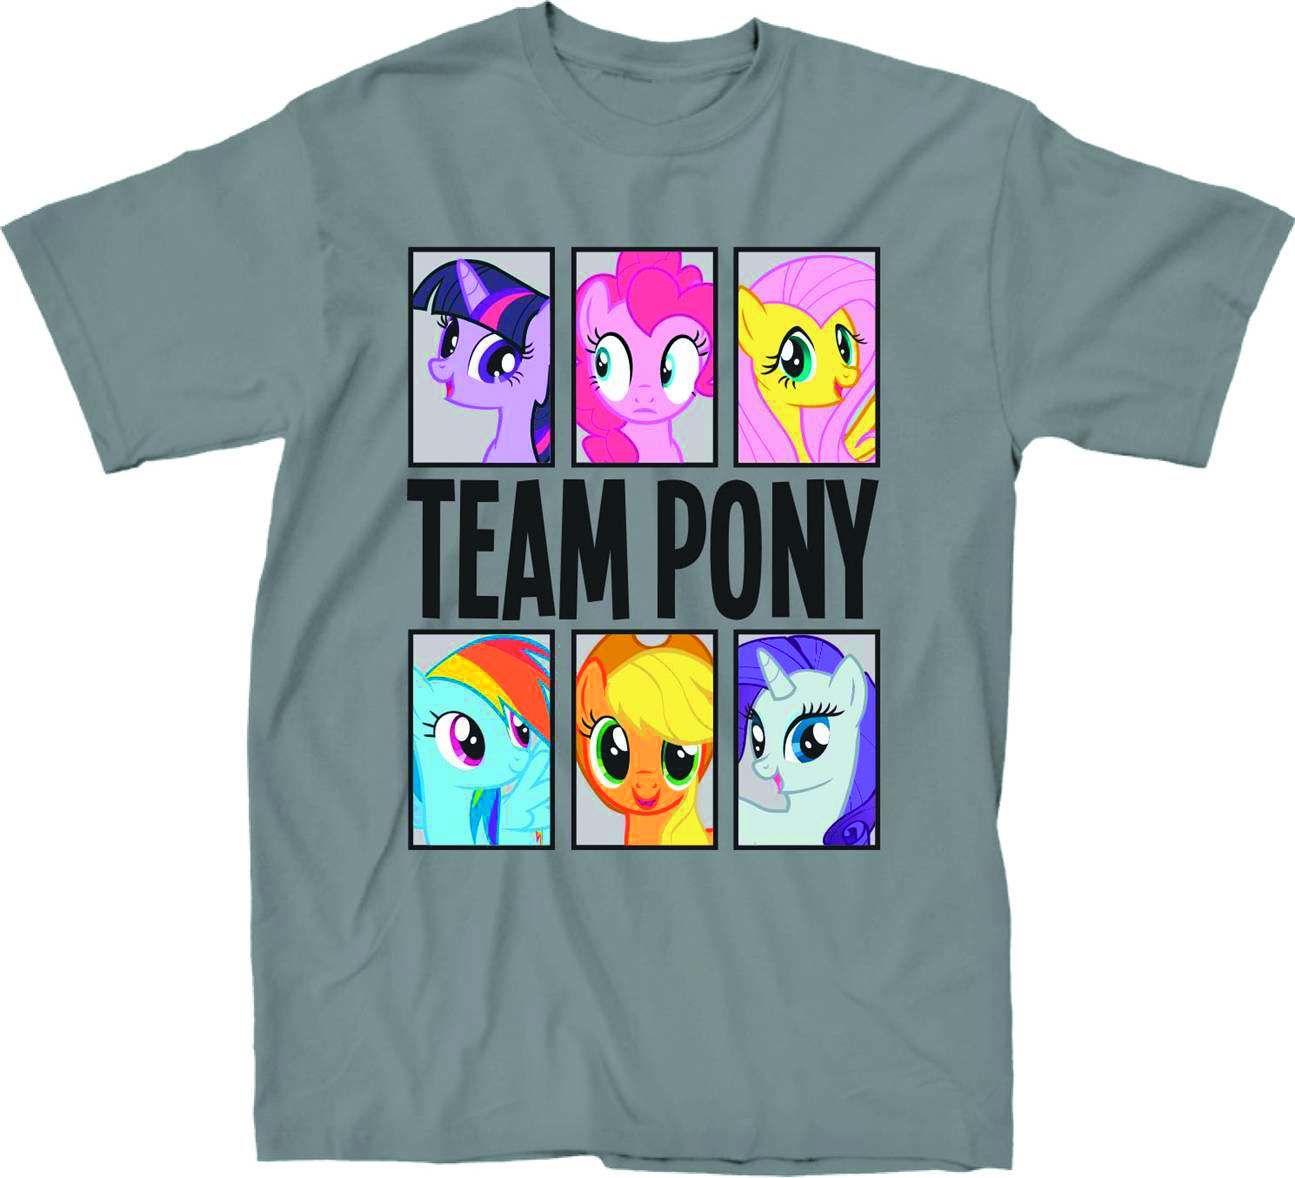 MY LITTLE PONY TEAM PONY PX SILVER T/S MED